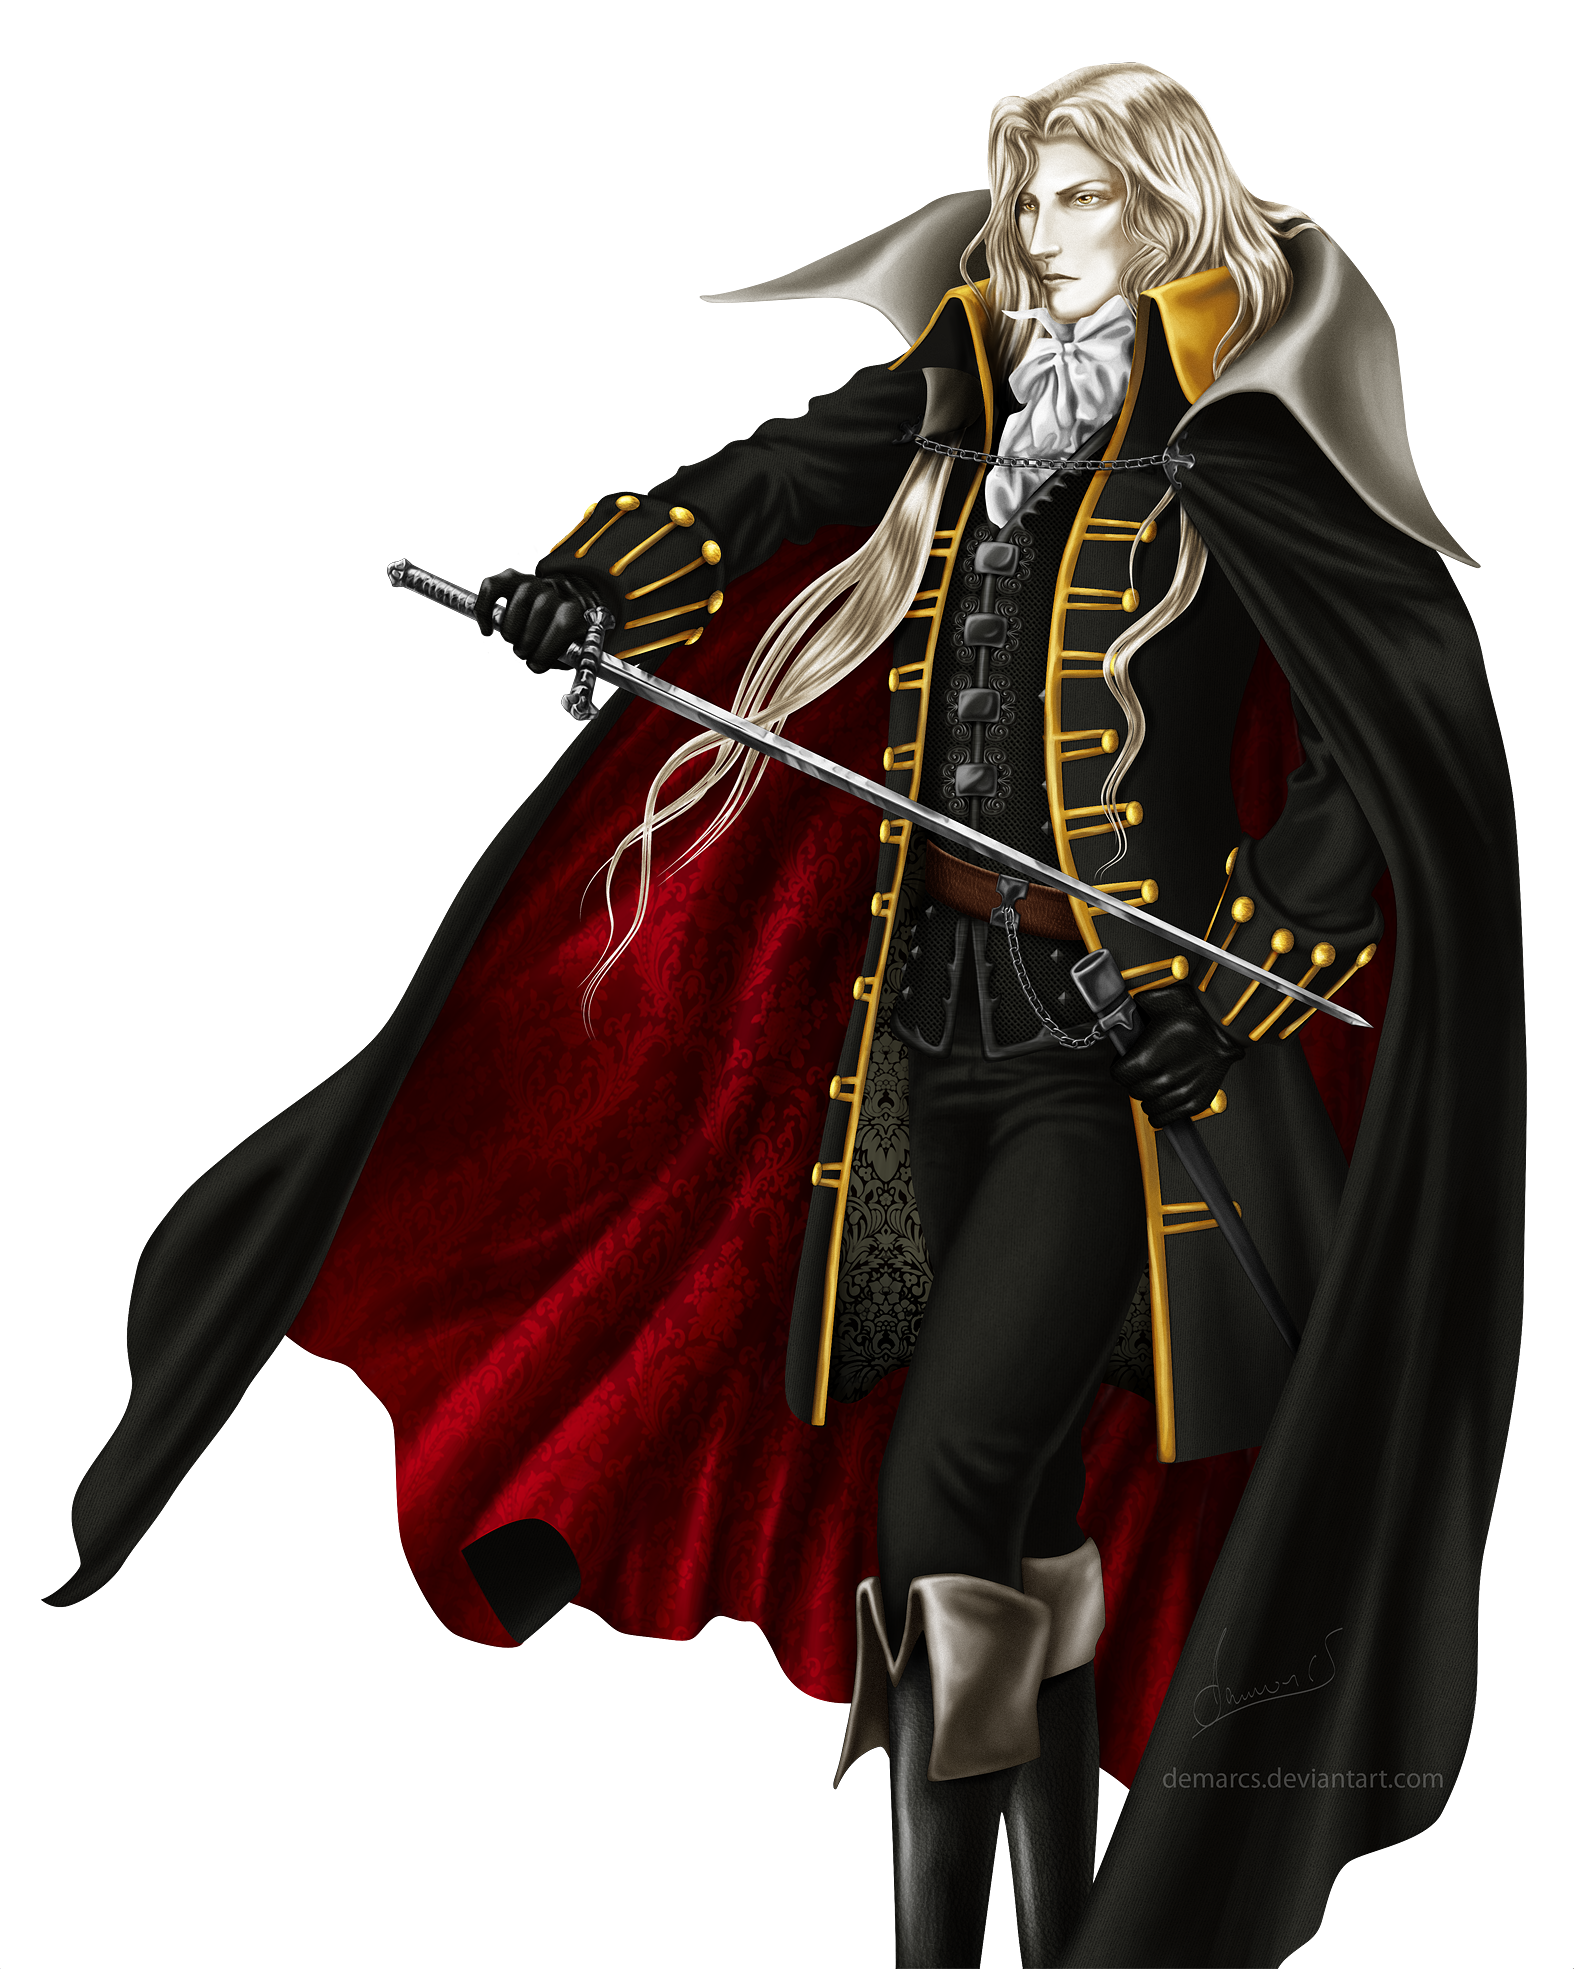 Unduh 100+ Wallpaper Alucard Transparent HD Paling Baru